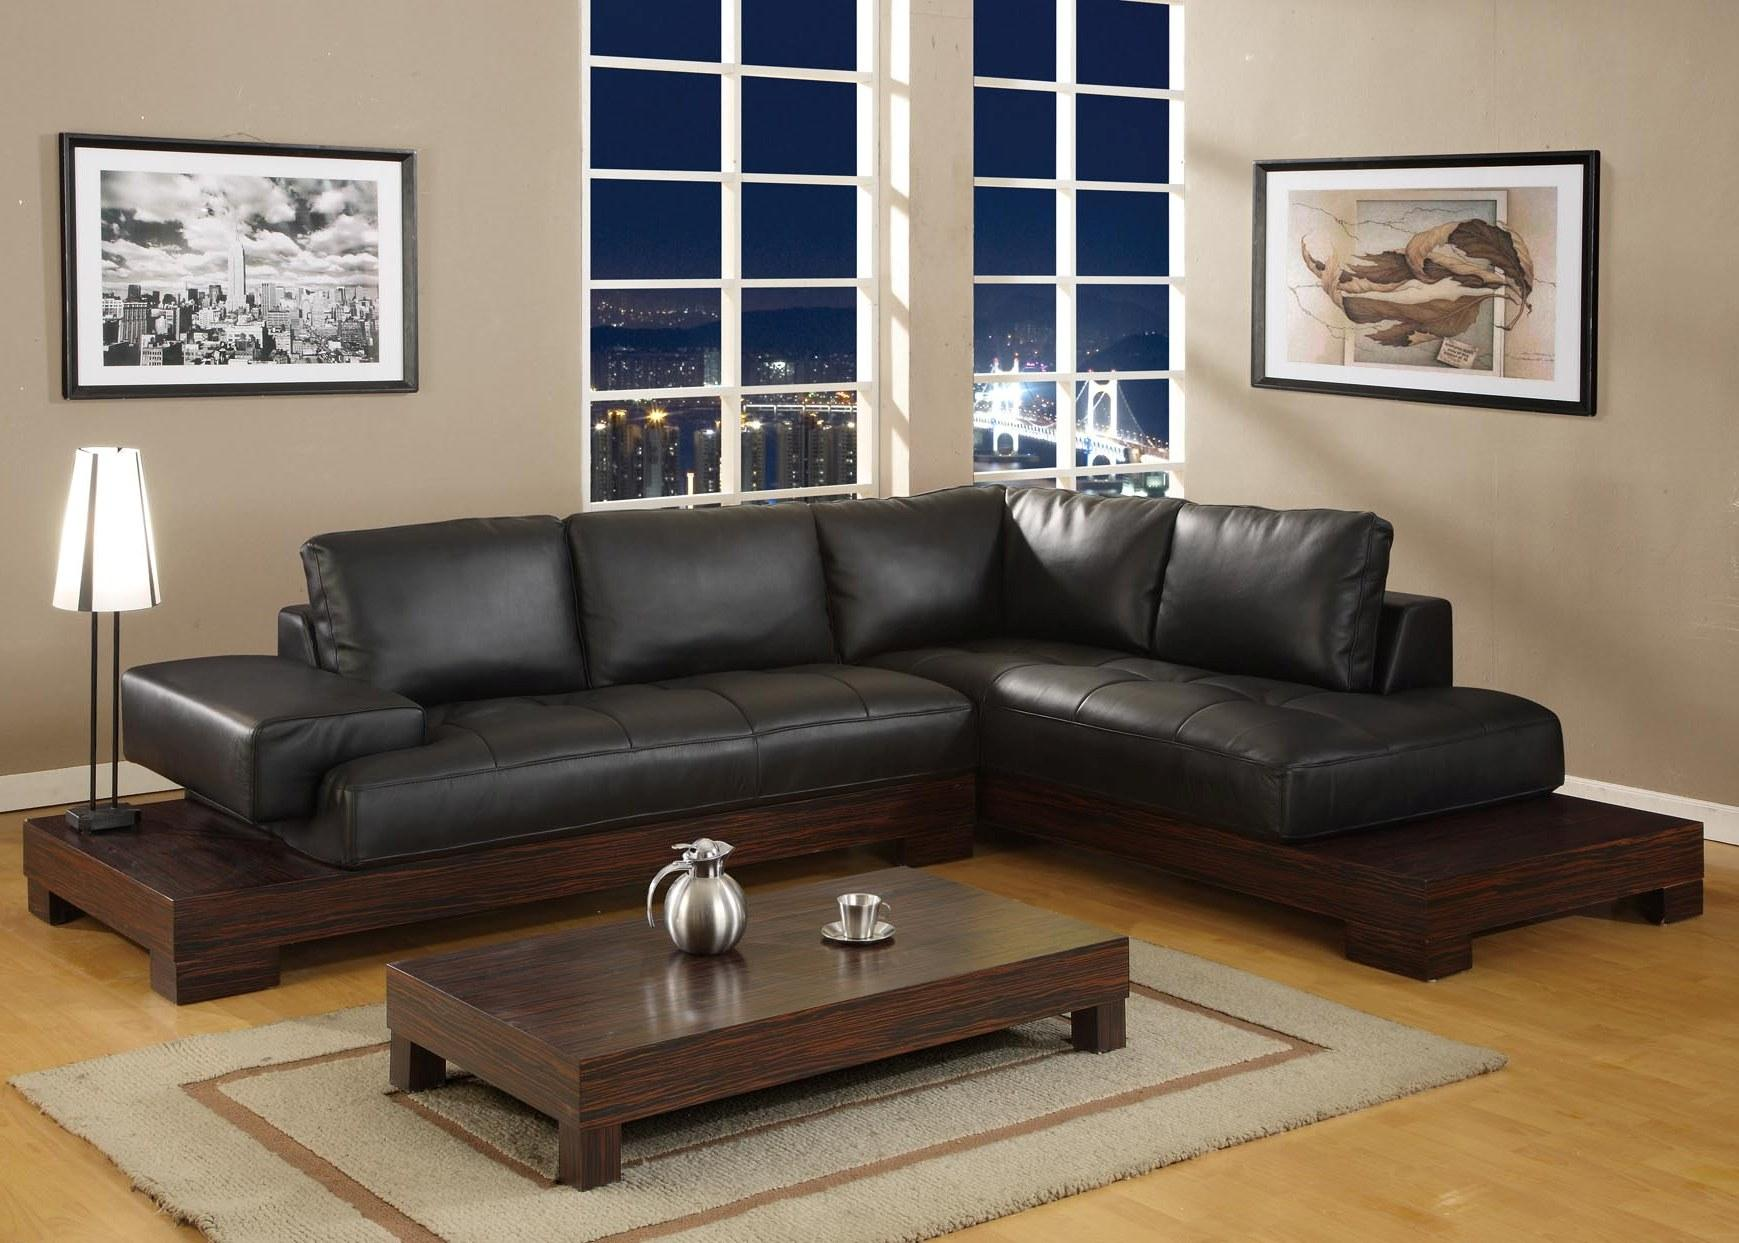 Black Sofa: Elegant and Original Design for Flawless Interior. Angular leather upholstered sofa and low coffee table for casual interior